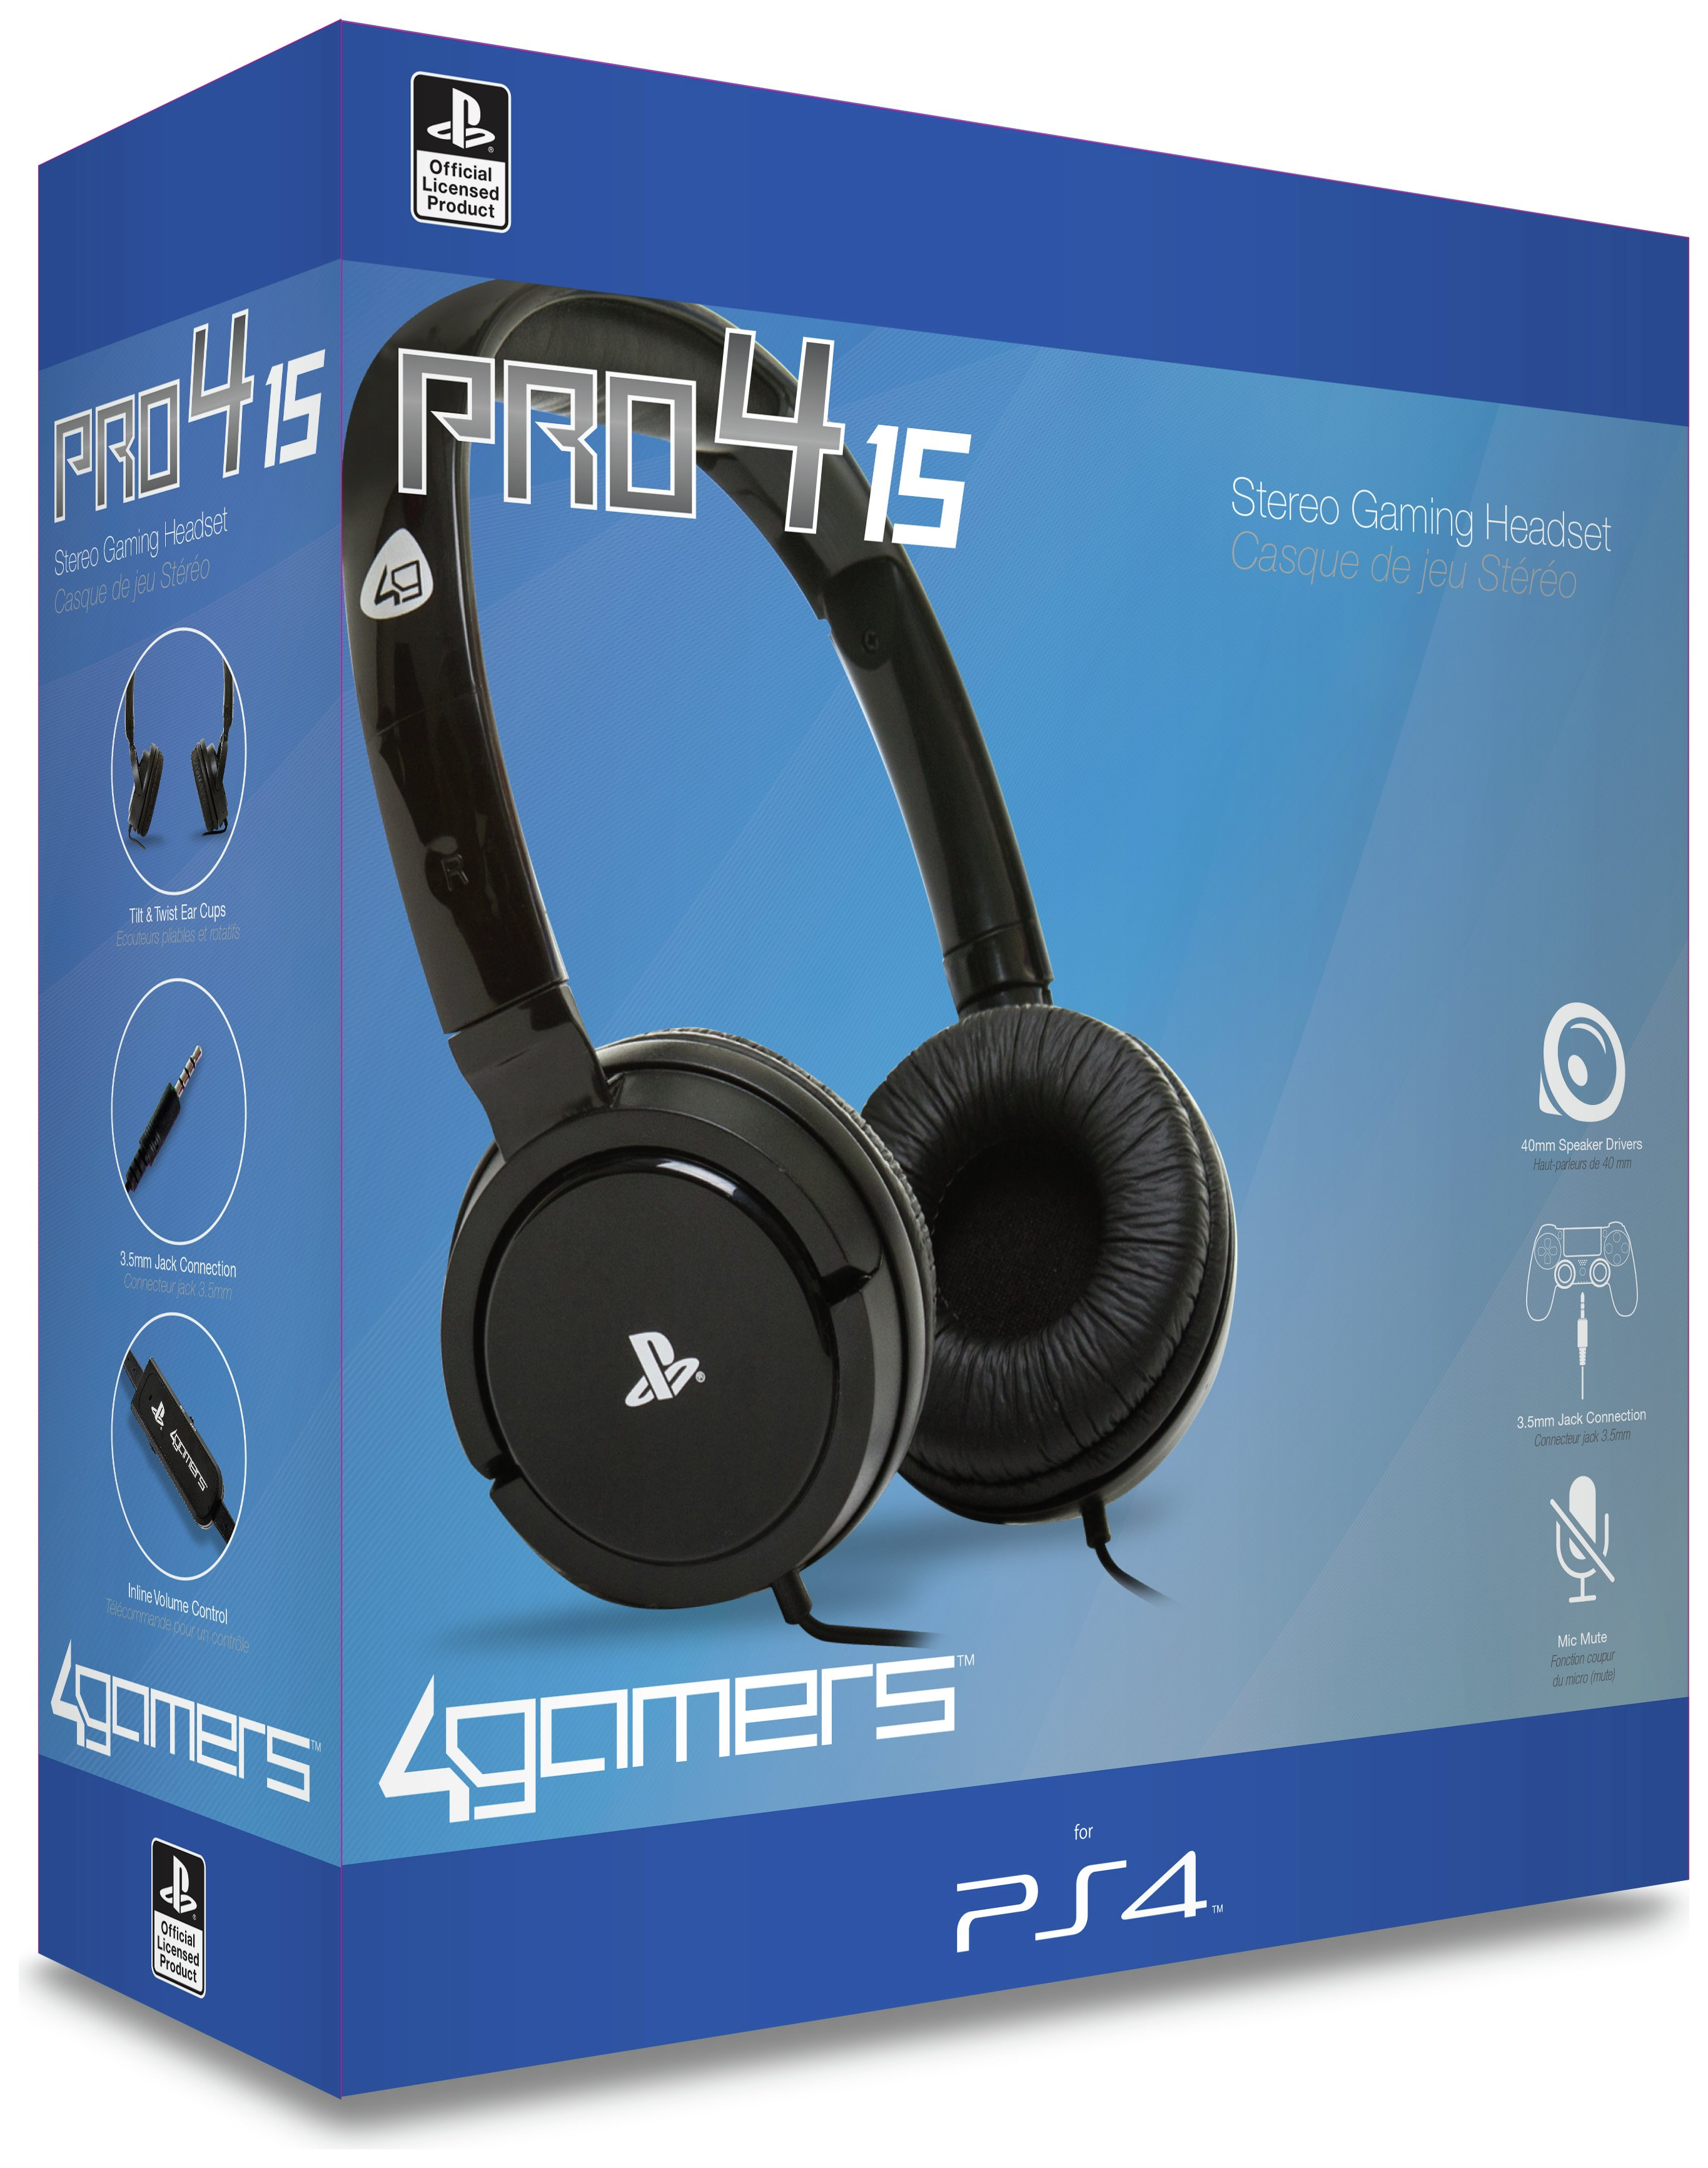 4Gamers Pro4 15 Wired Multi-platform Gaming Headset